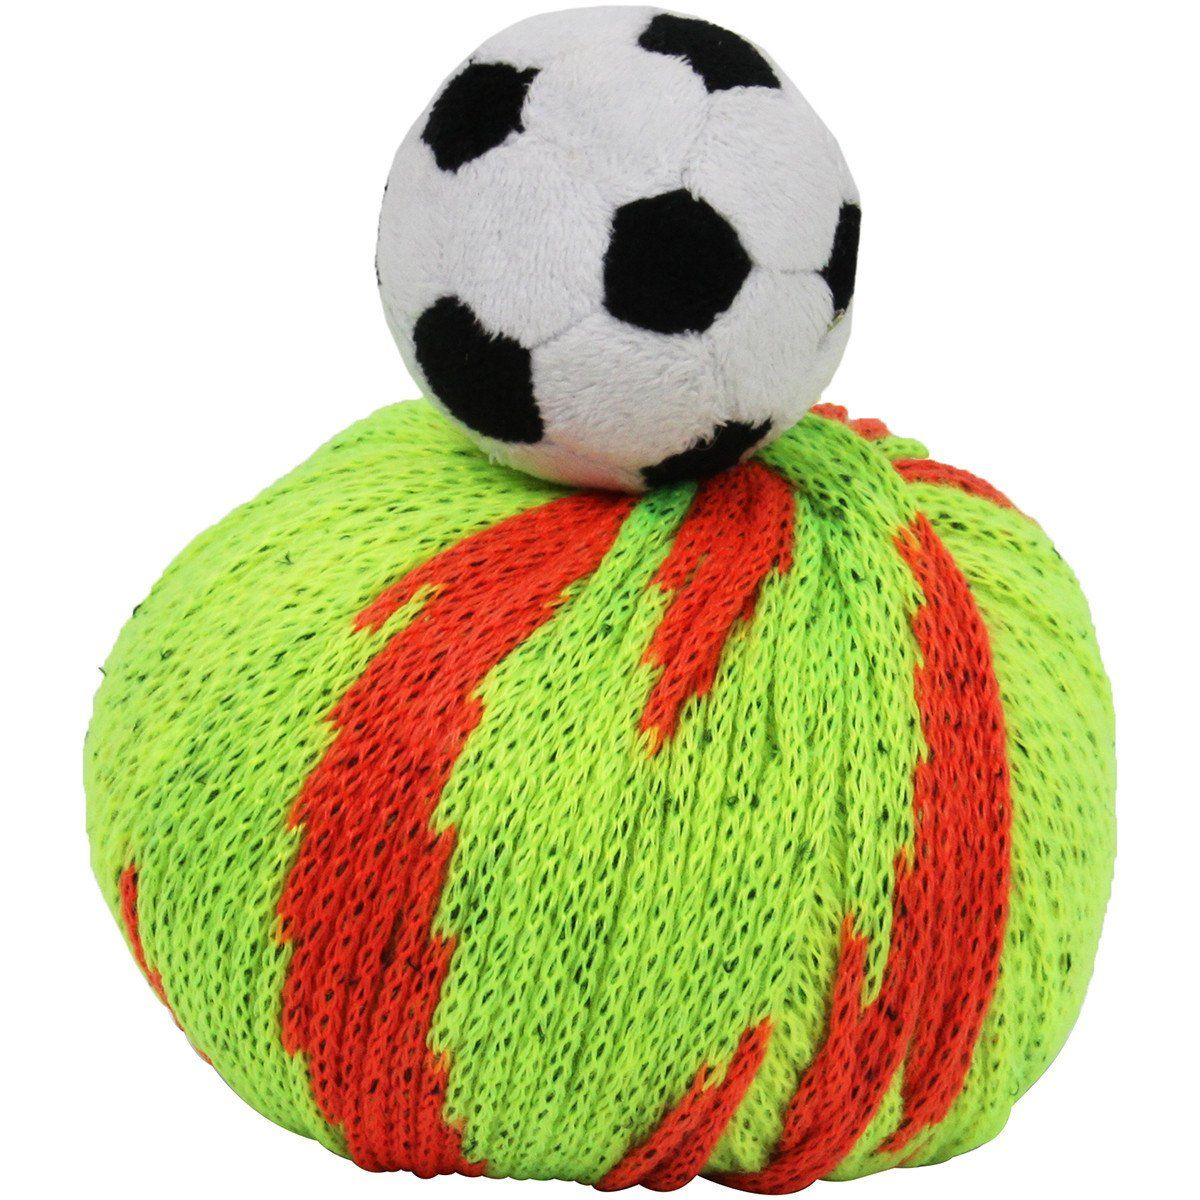 Dmc Top This Yarn Soccer Ball Soccer Ball And Products